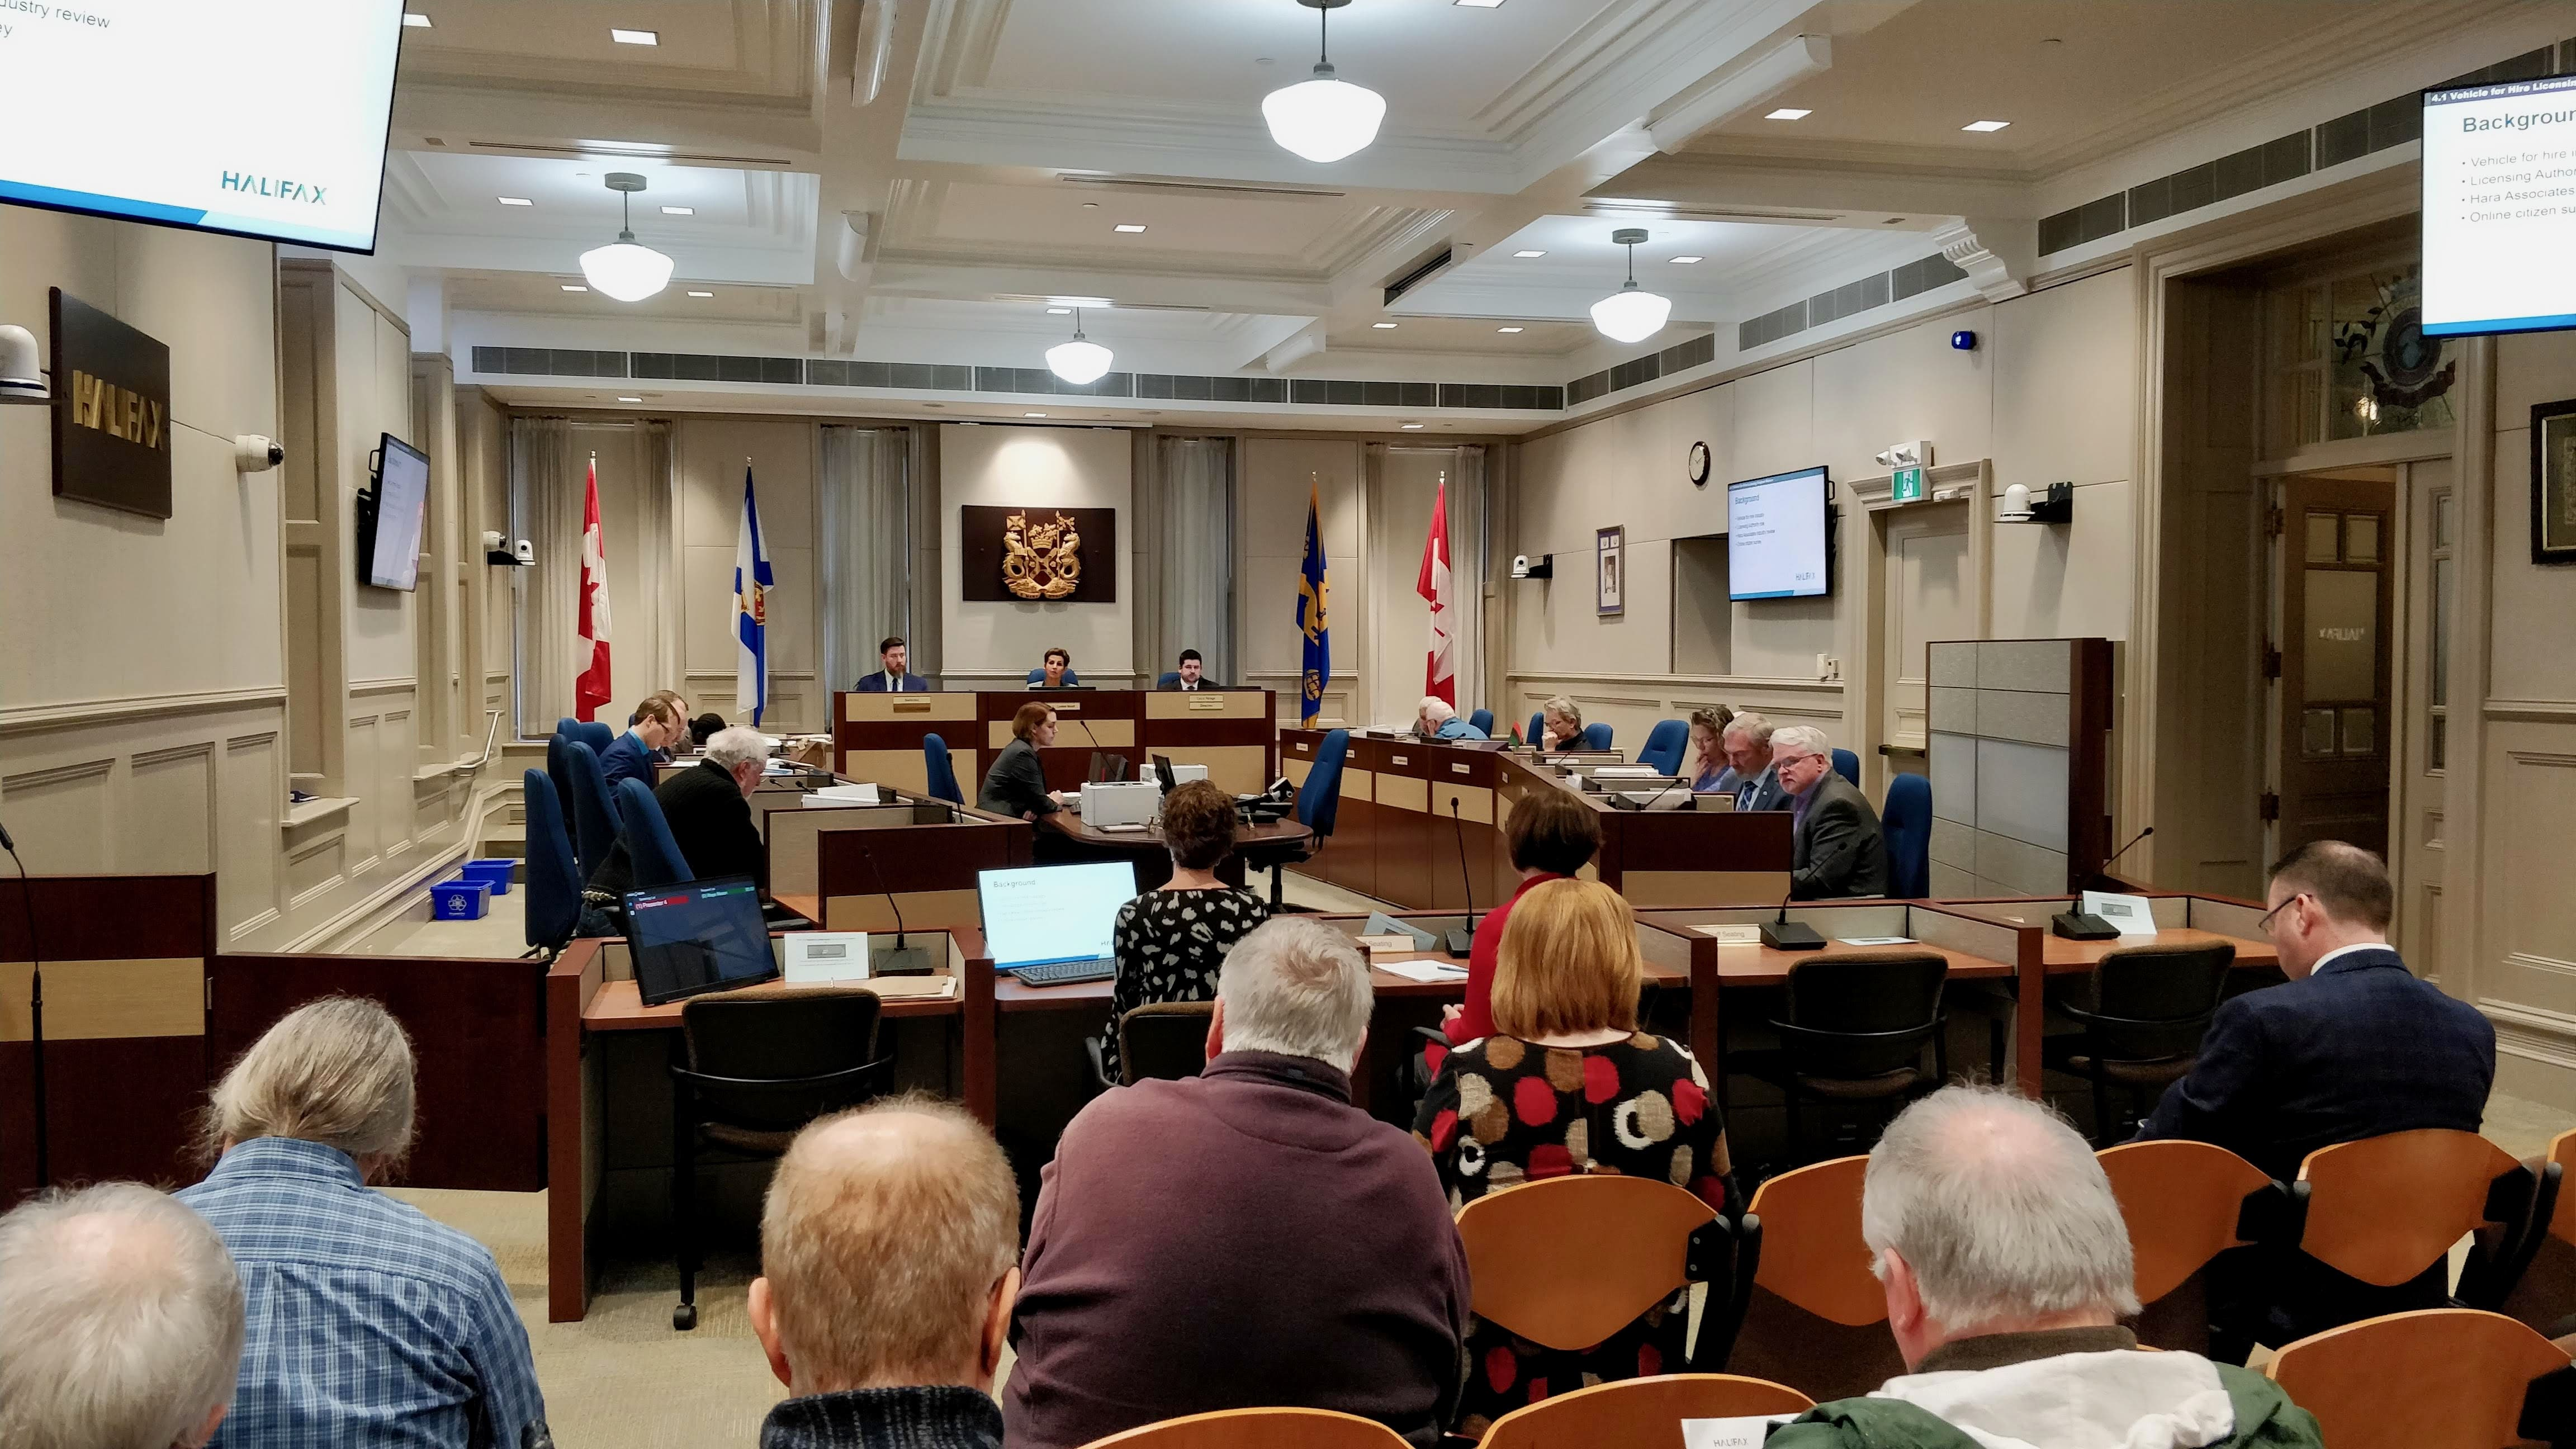 Tuesday's transportation standing committee discussed the taxi and limousine bylaw.